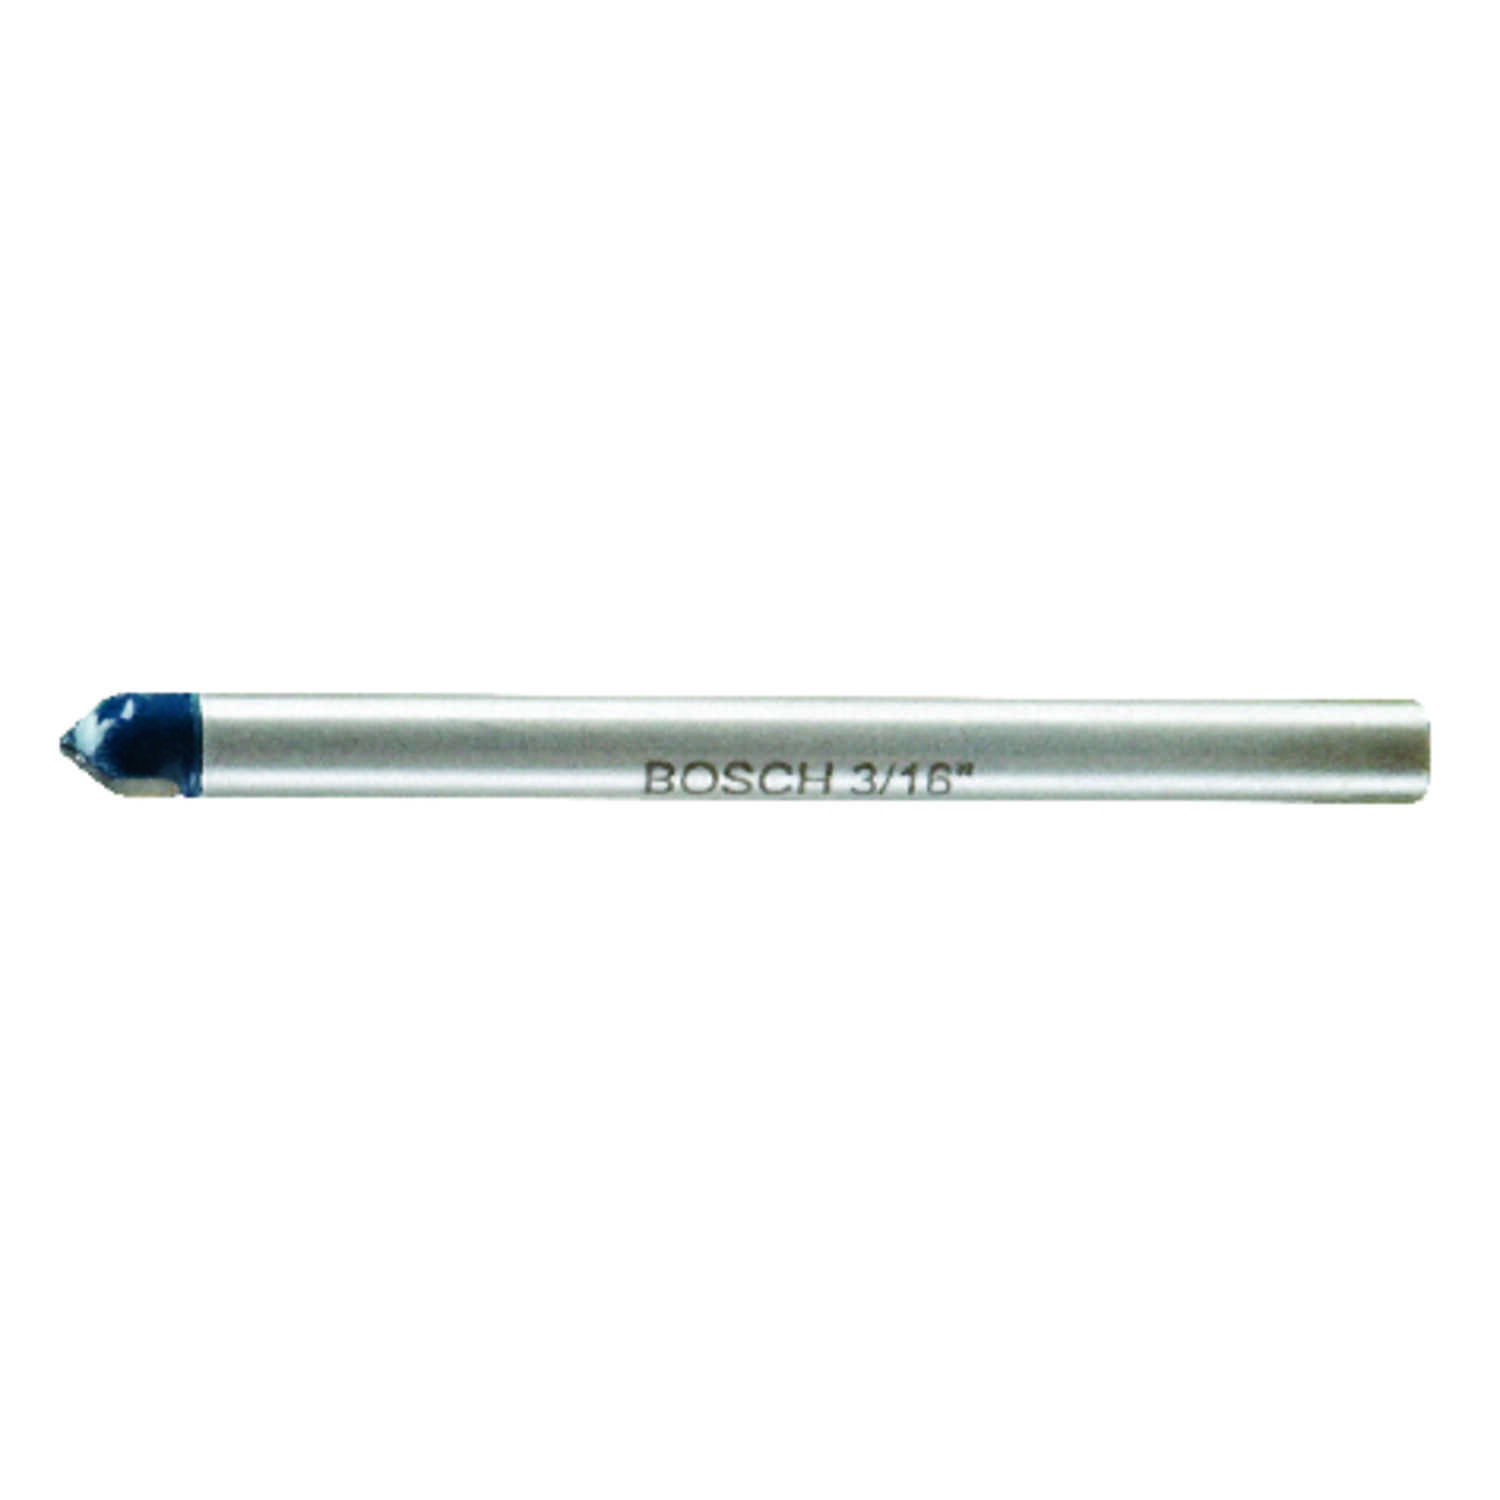 Bosch  3/16 in.  x 4 in. L Carbide Tipped  Glass and Tile Bit  1 pc.